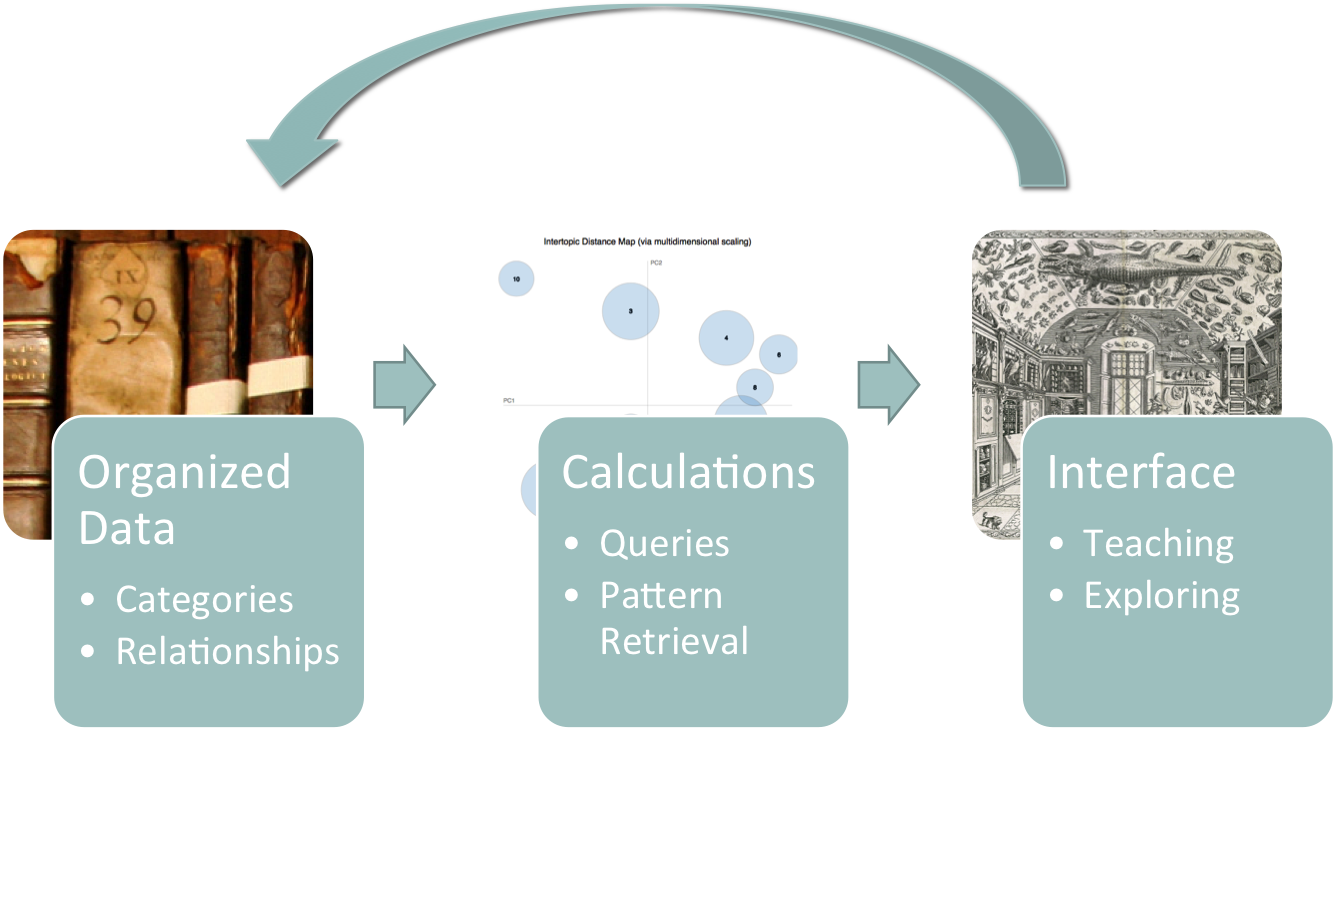 Visual representation of the interaction of layers in the Galileo's library project.